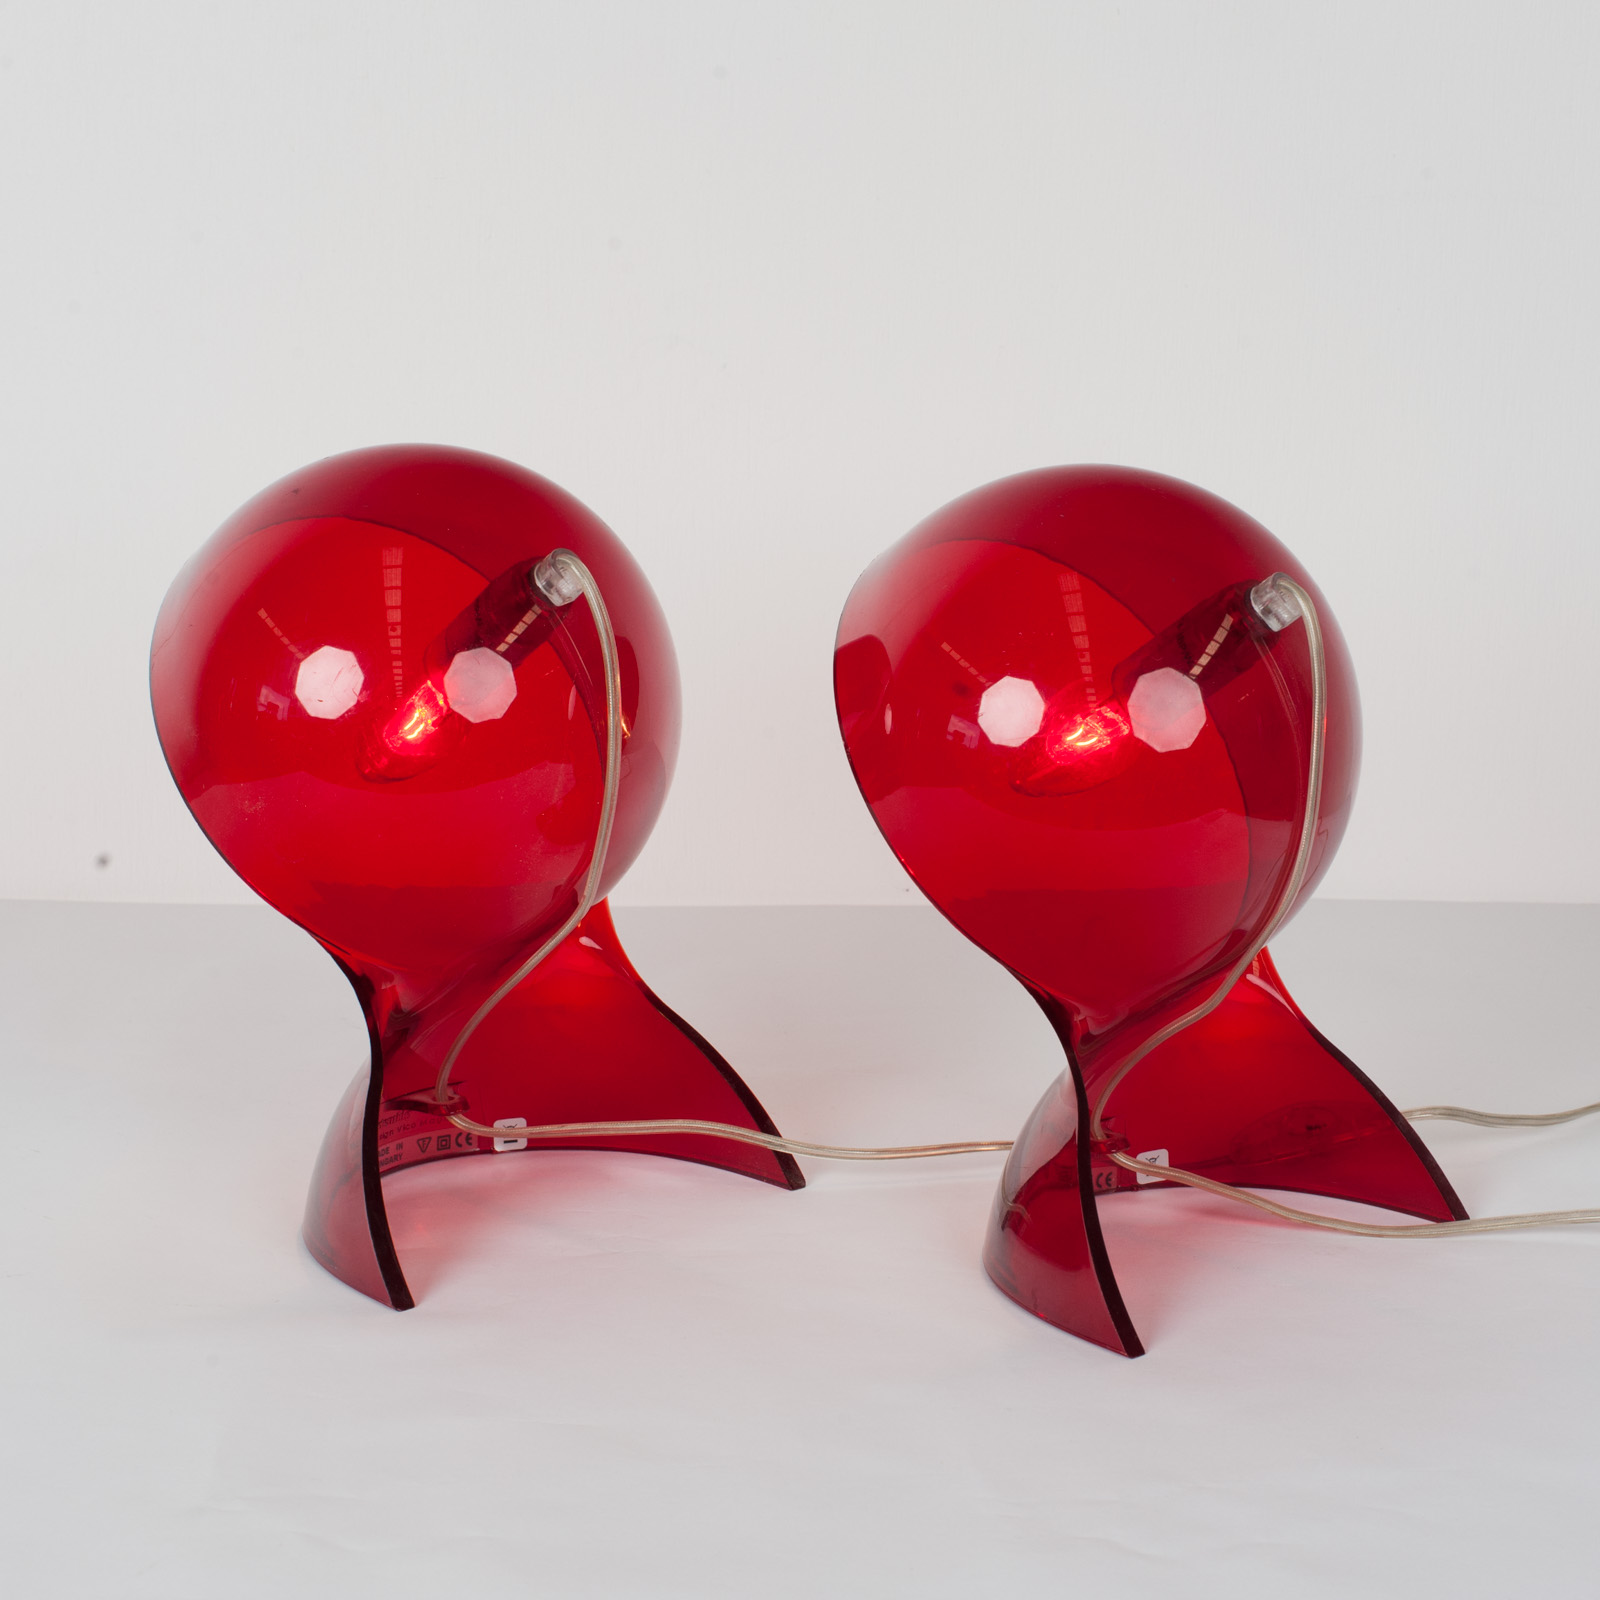 Pair Of Dalu Lamps In Red Plexiglass By Vico Magistretti For Artemide, 1969, Italy5